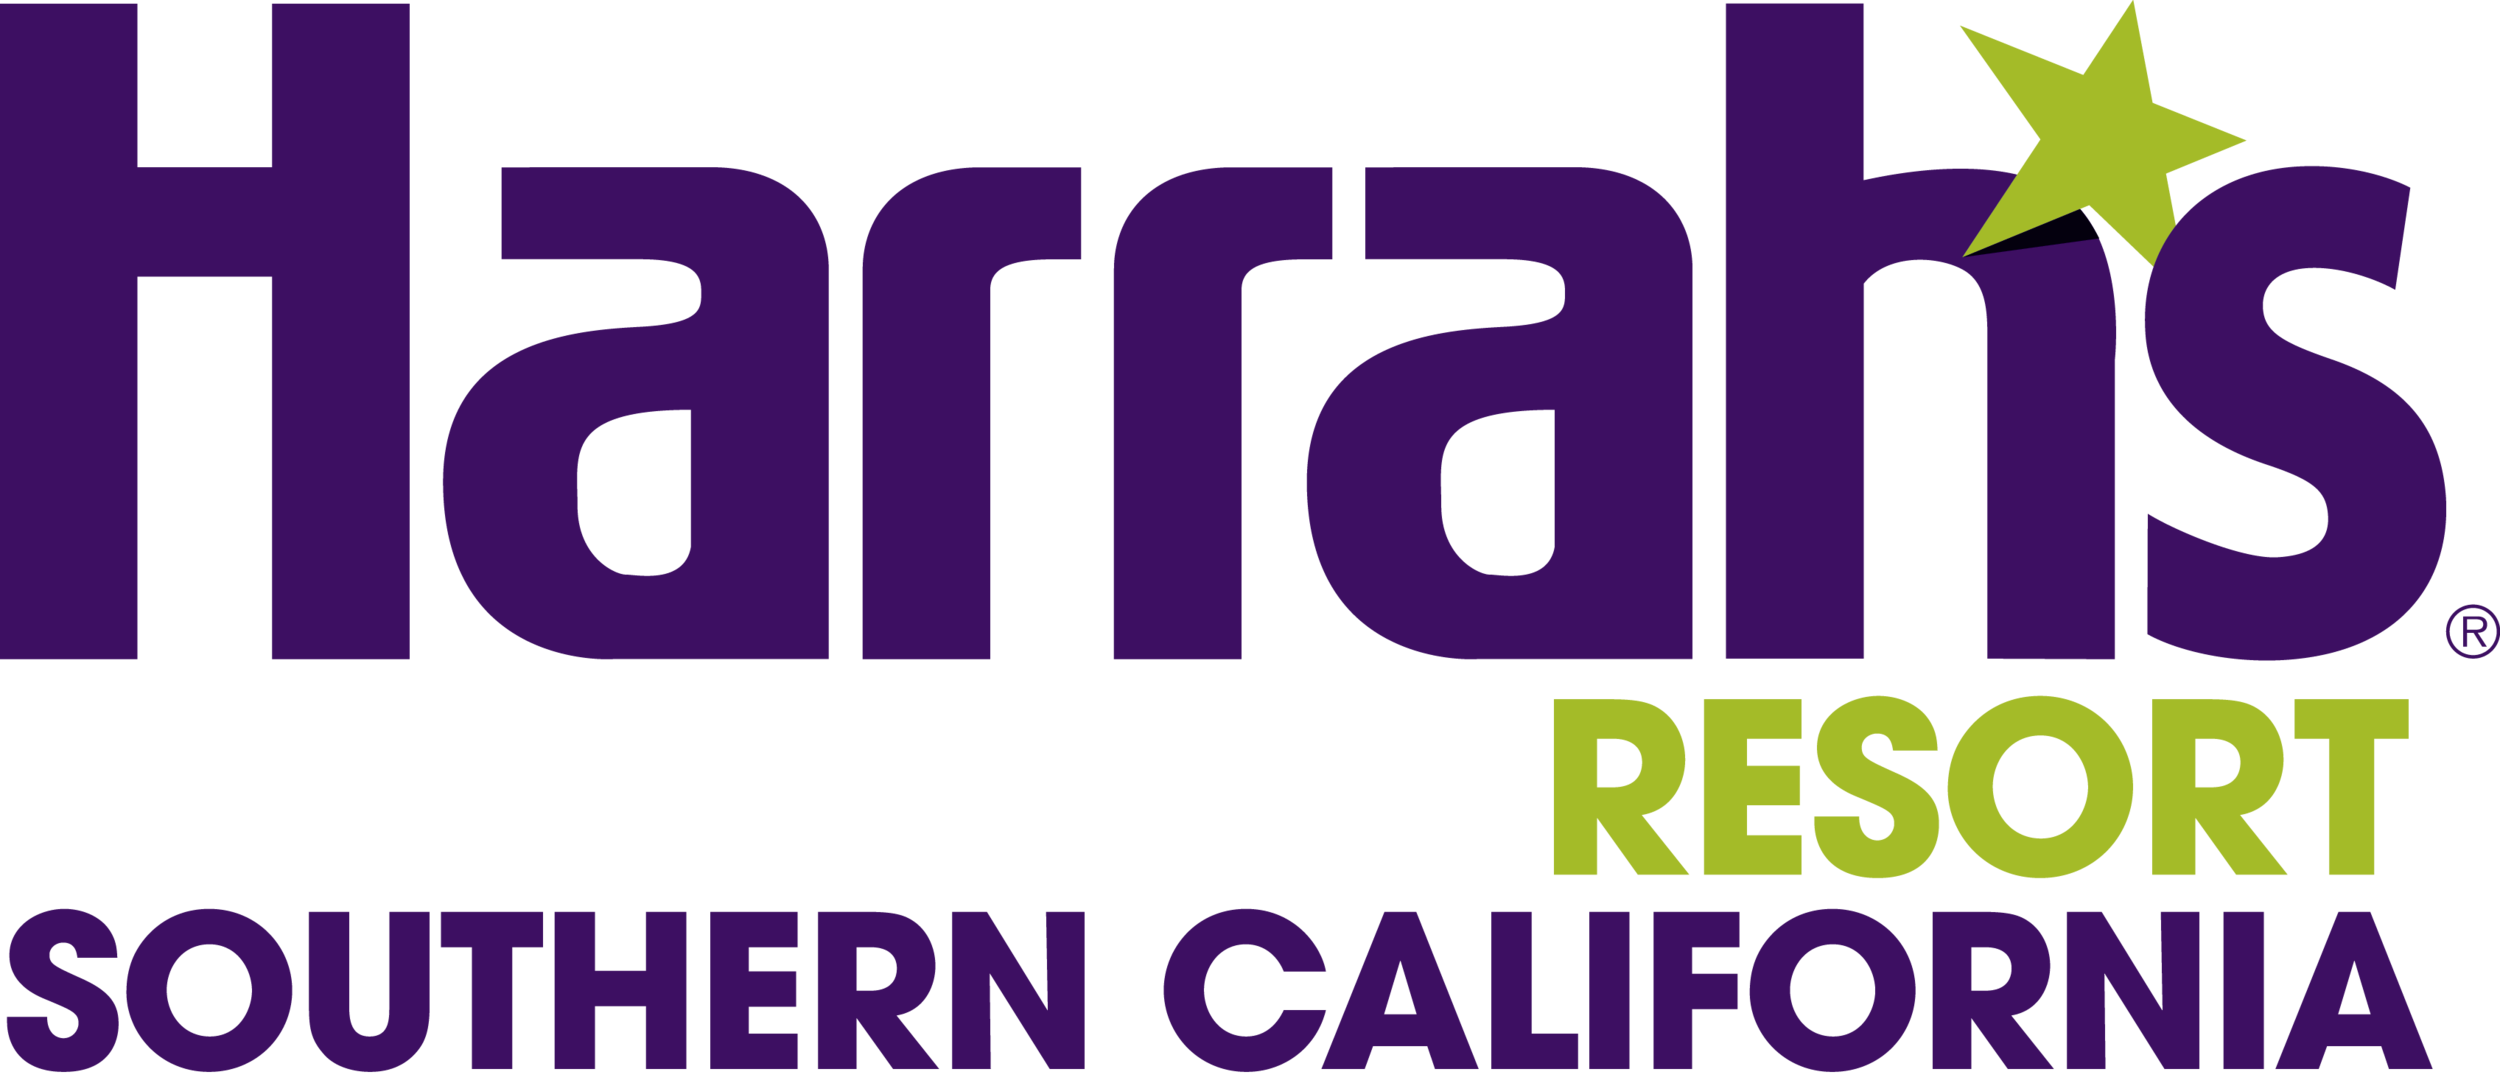 Harrah's_Resort_Southern_California_casino_logo.png